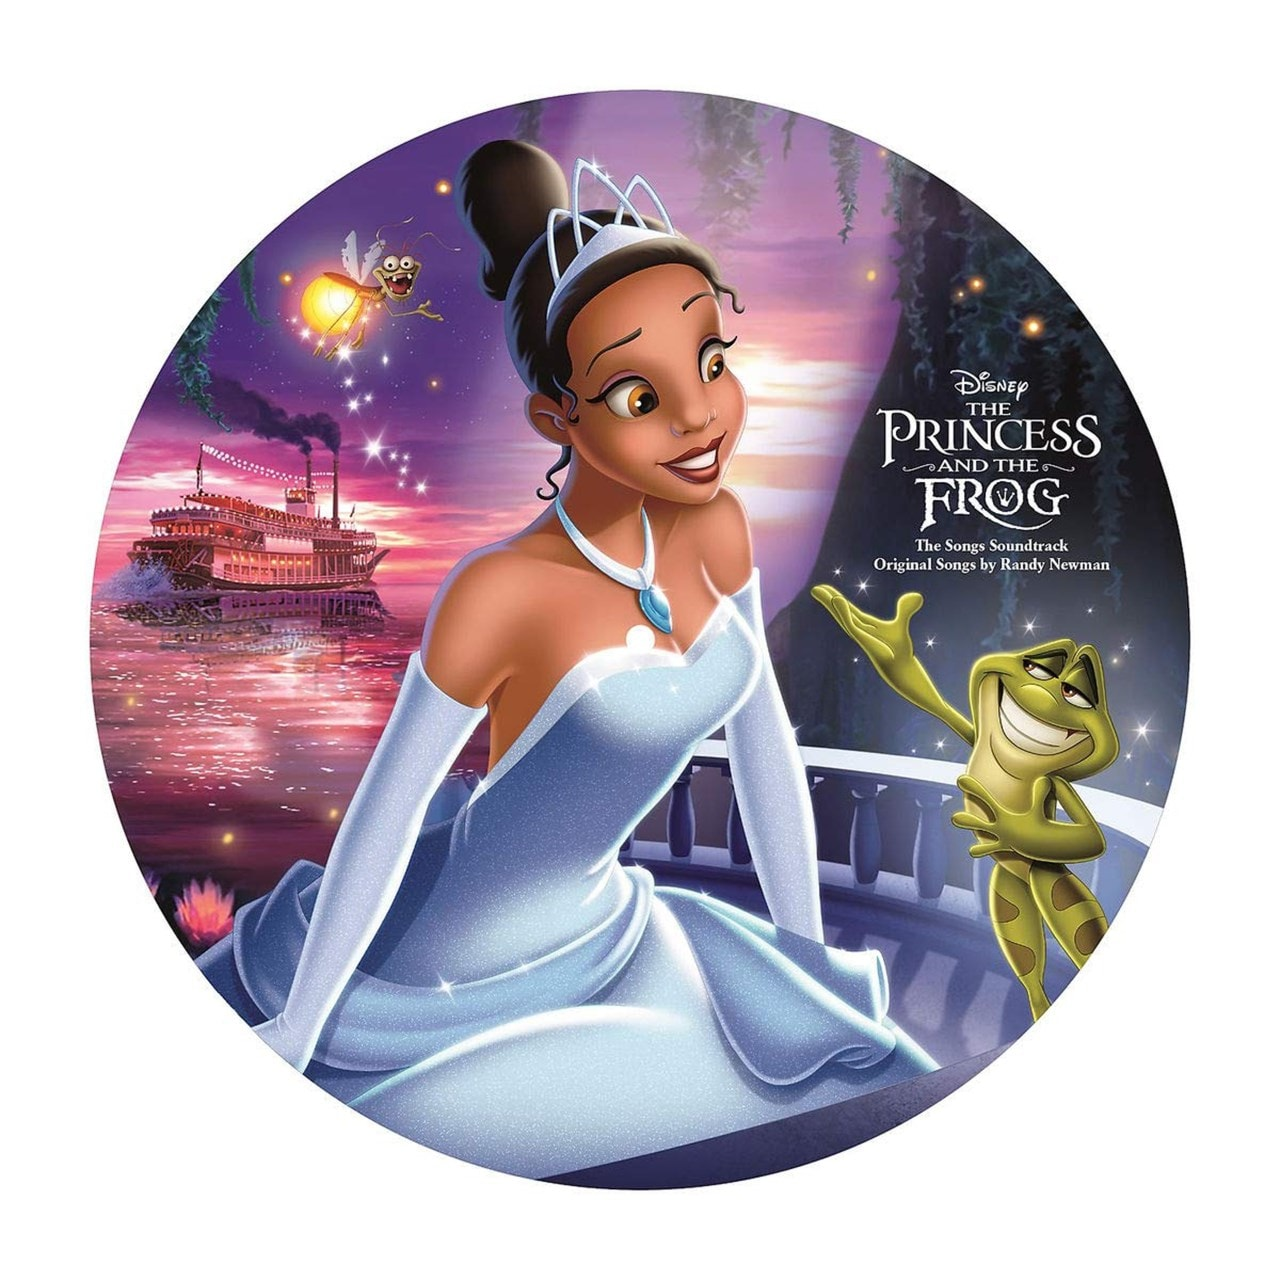 The Princess and the Frog: The Songs Soundtrack - 1